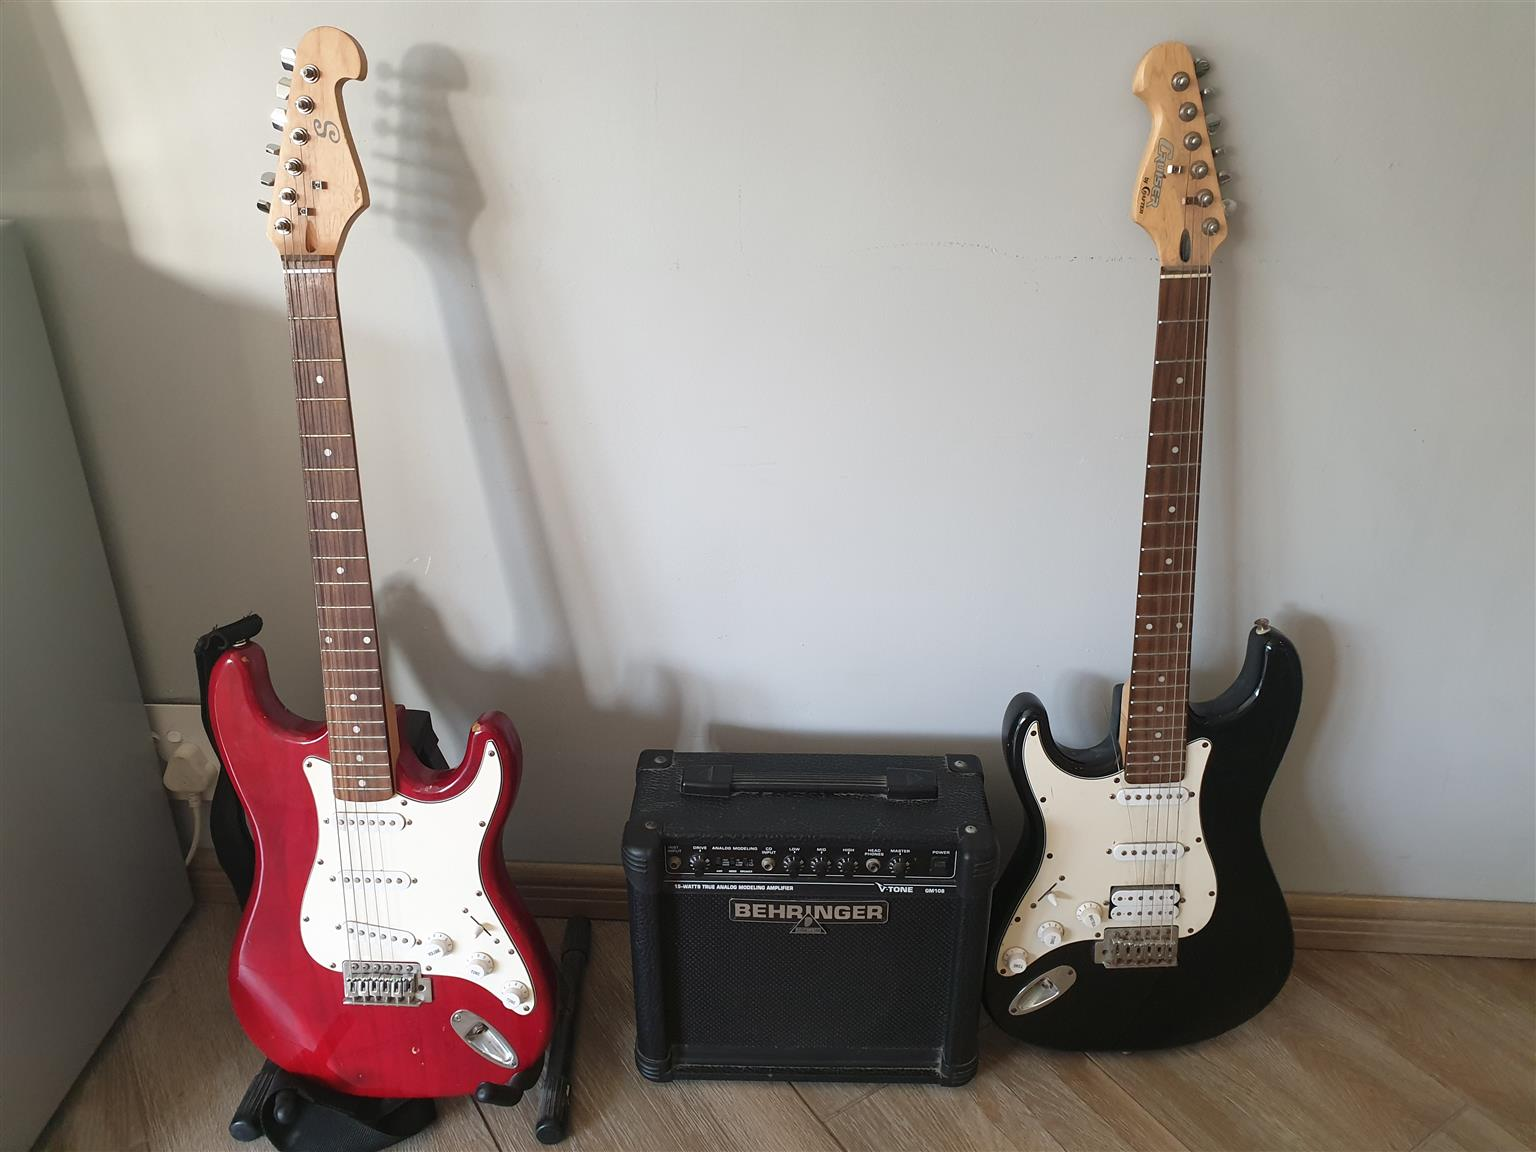 Guitars and Amplifier